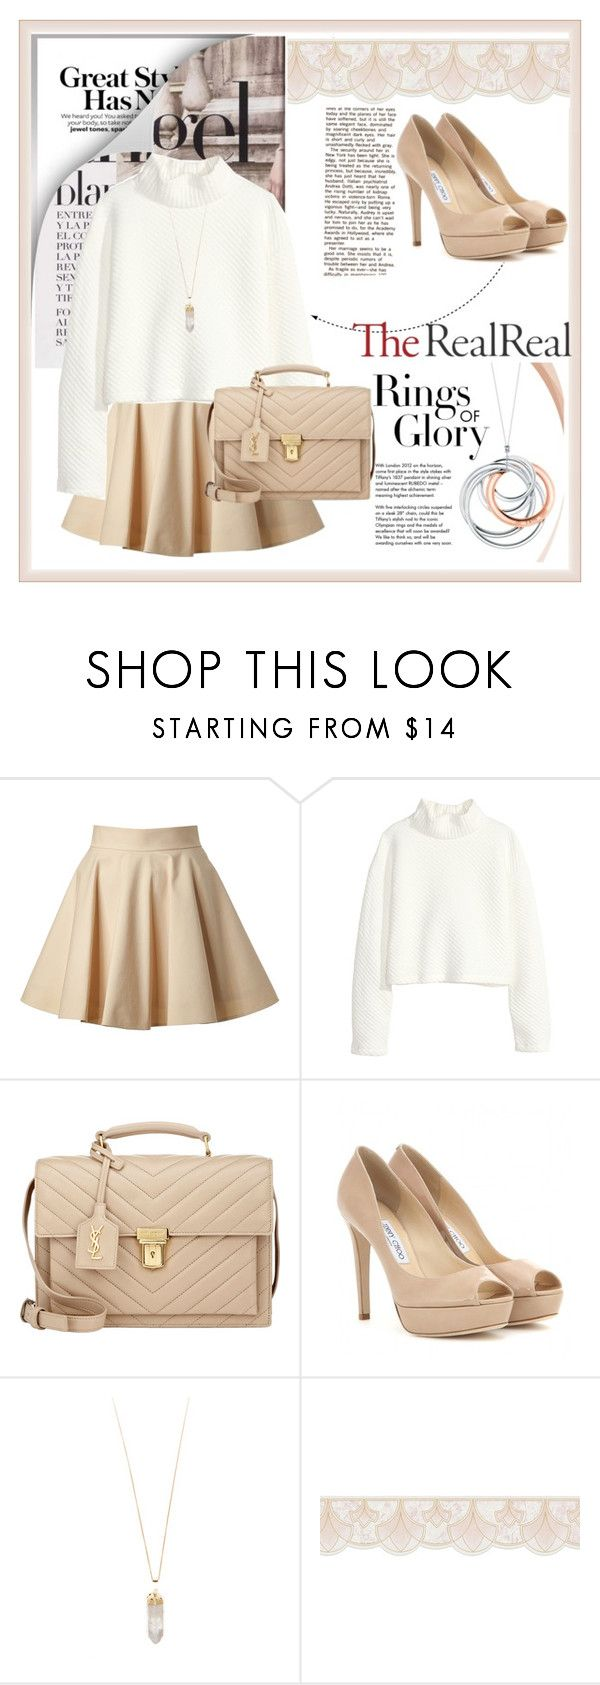 """""""Lovely Fall"""" by nia-nguyen ❤ liked on Polyvore featuring Tiffany & Co., RED Valentino, H&M, Yves Saint Laurent, Jimmy Choo and Rebecca Taylor"""